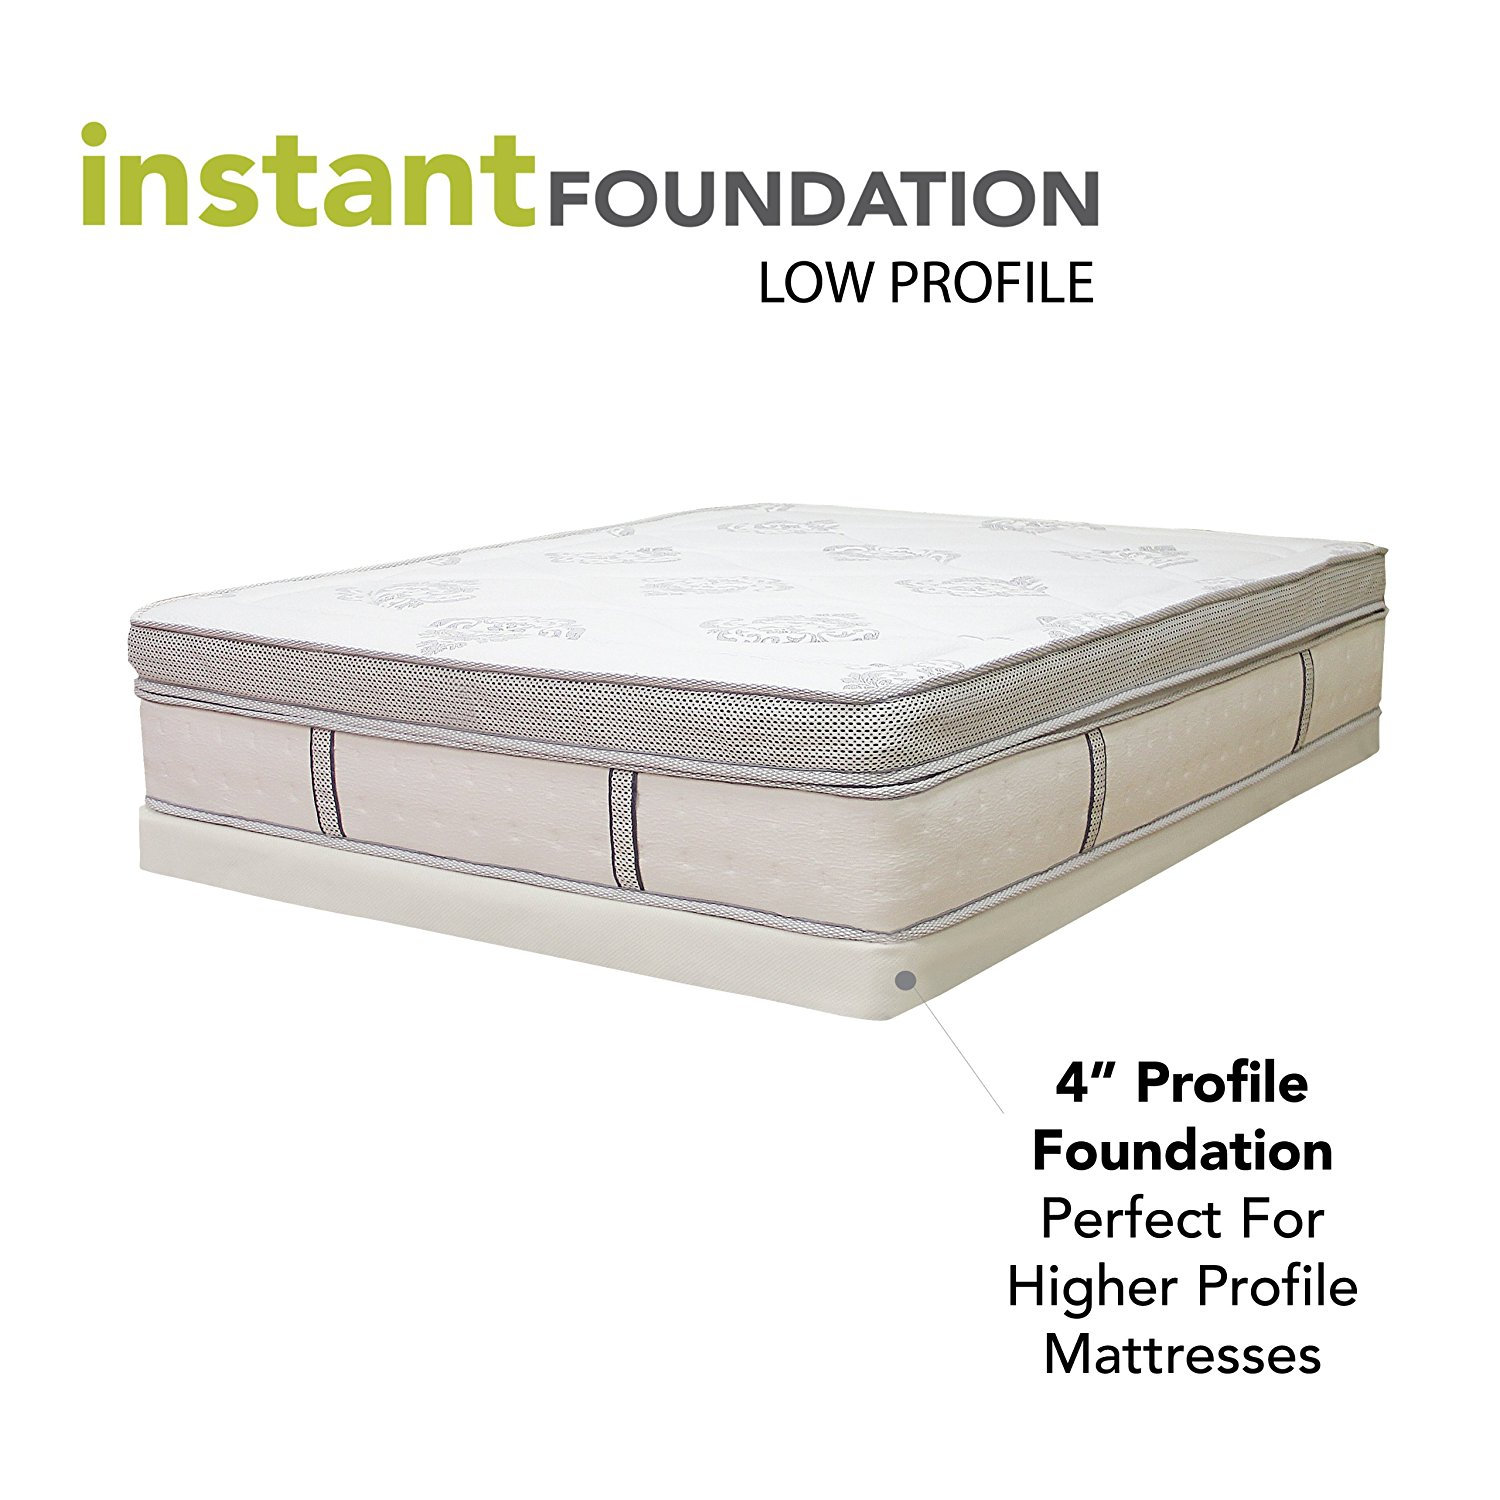 Classic Brands 4 Inch Instant Foundation Low Profile Foundation or Box Spring Replacement, Twin